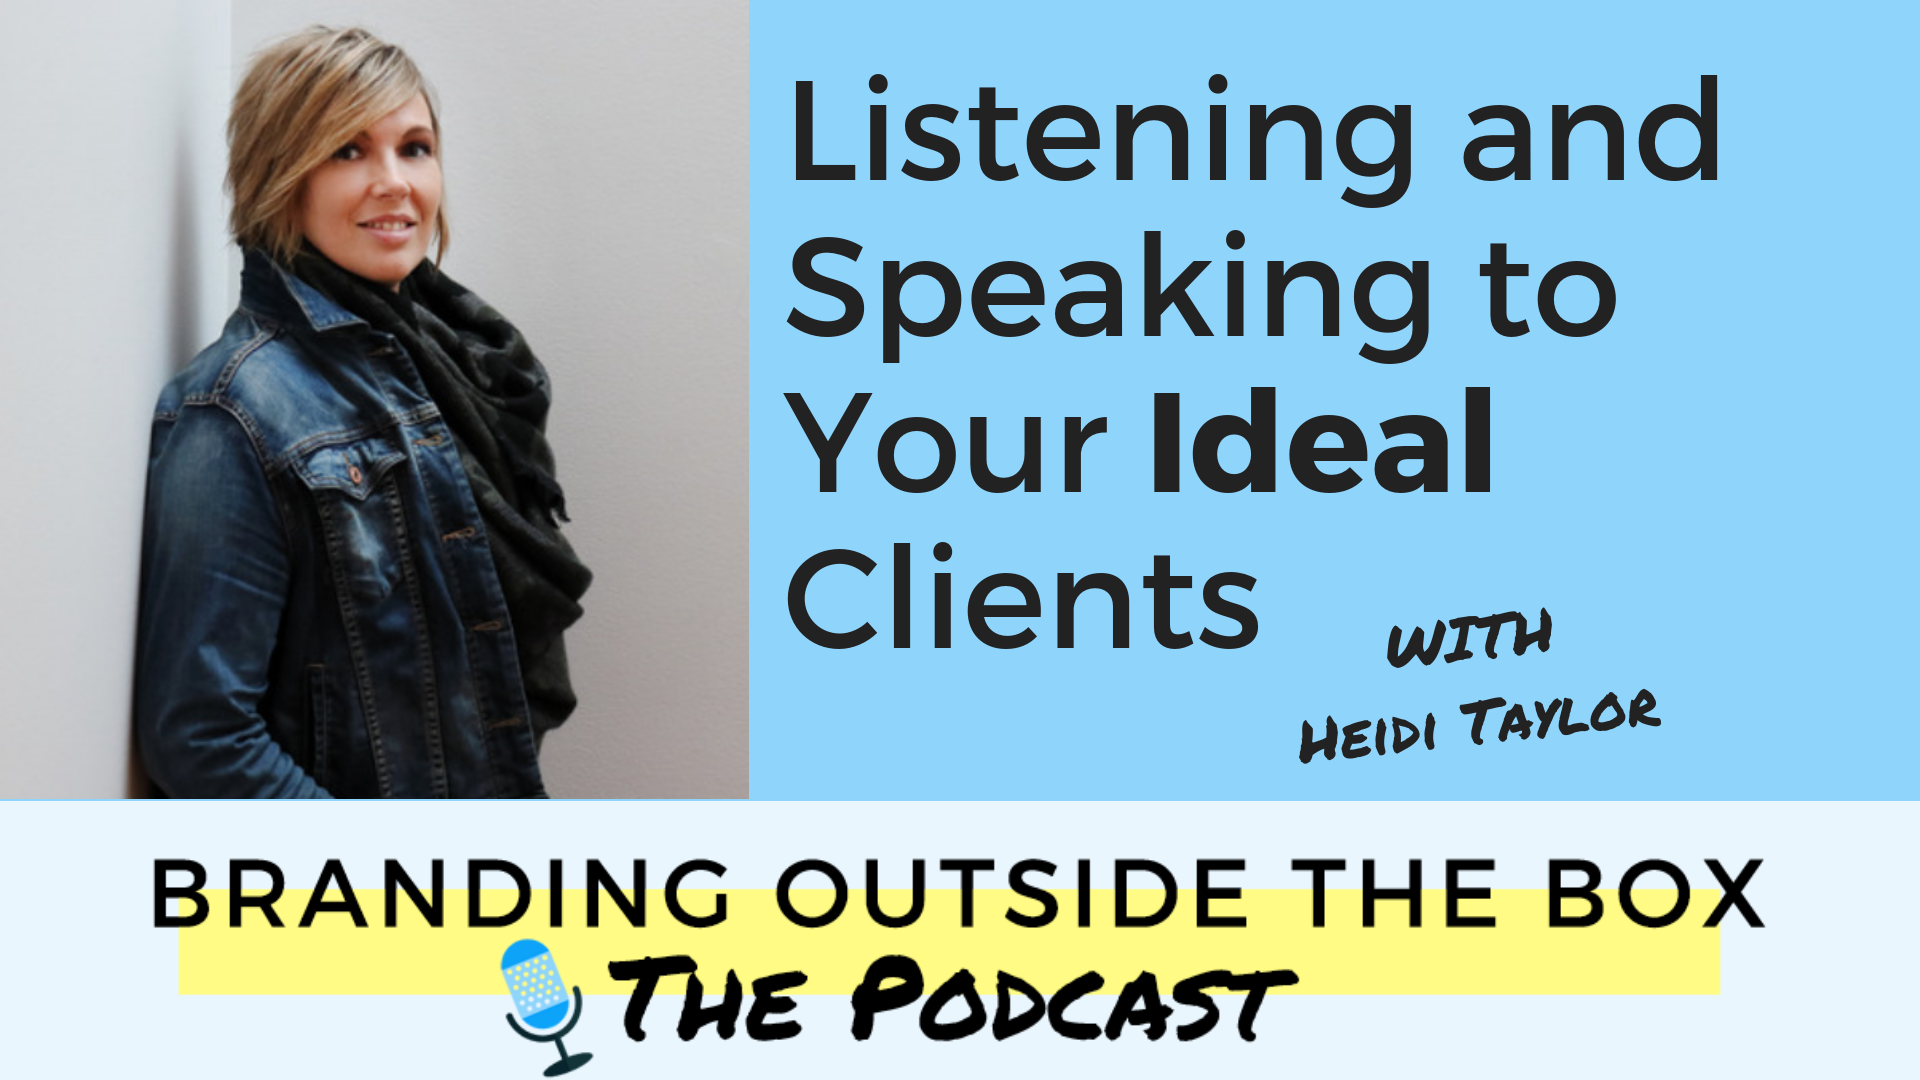 Listening and Speaking to Your Ideal Clients